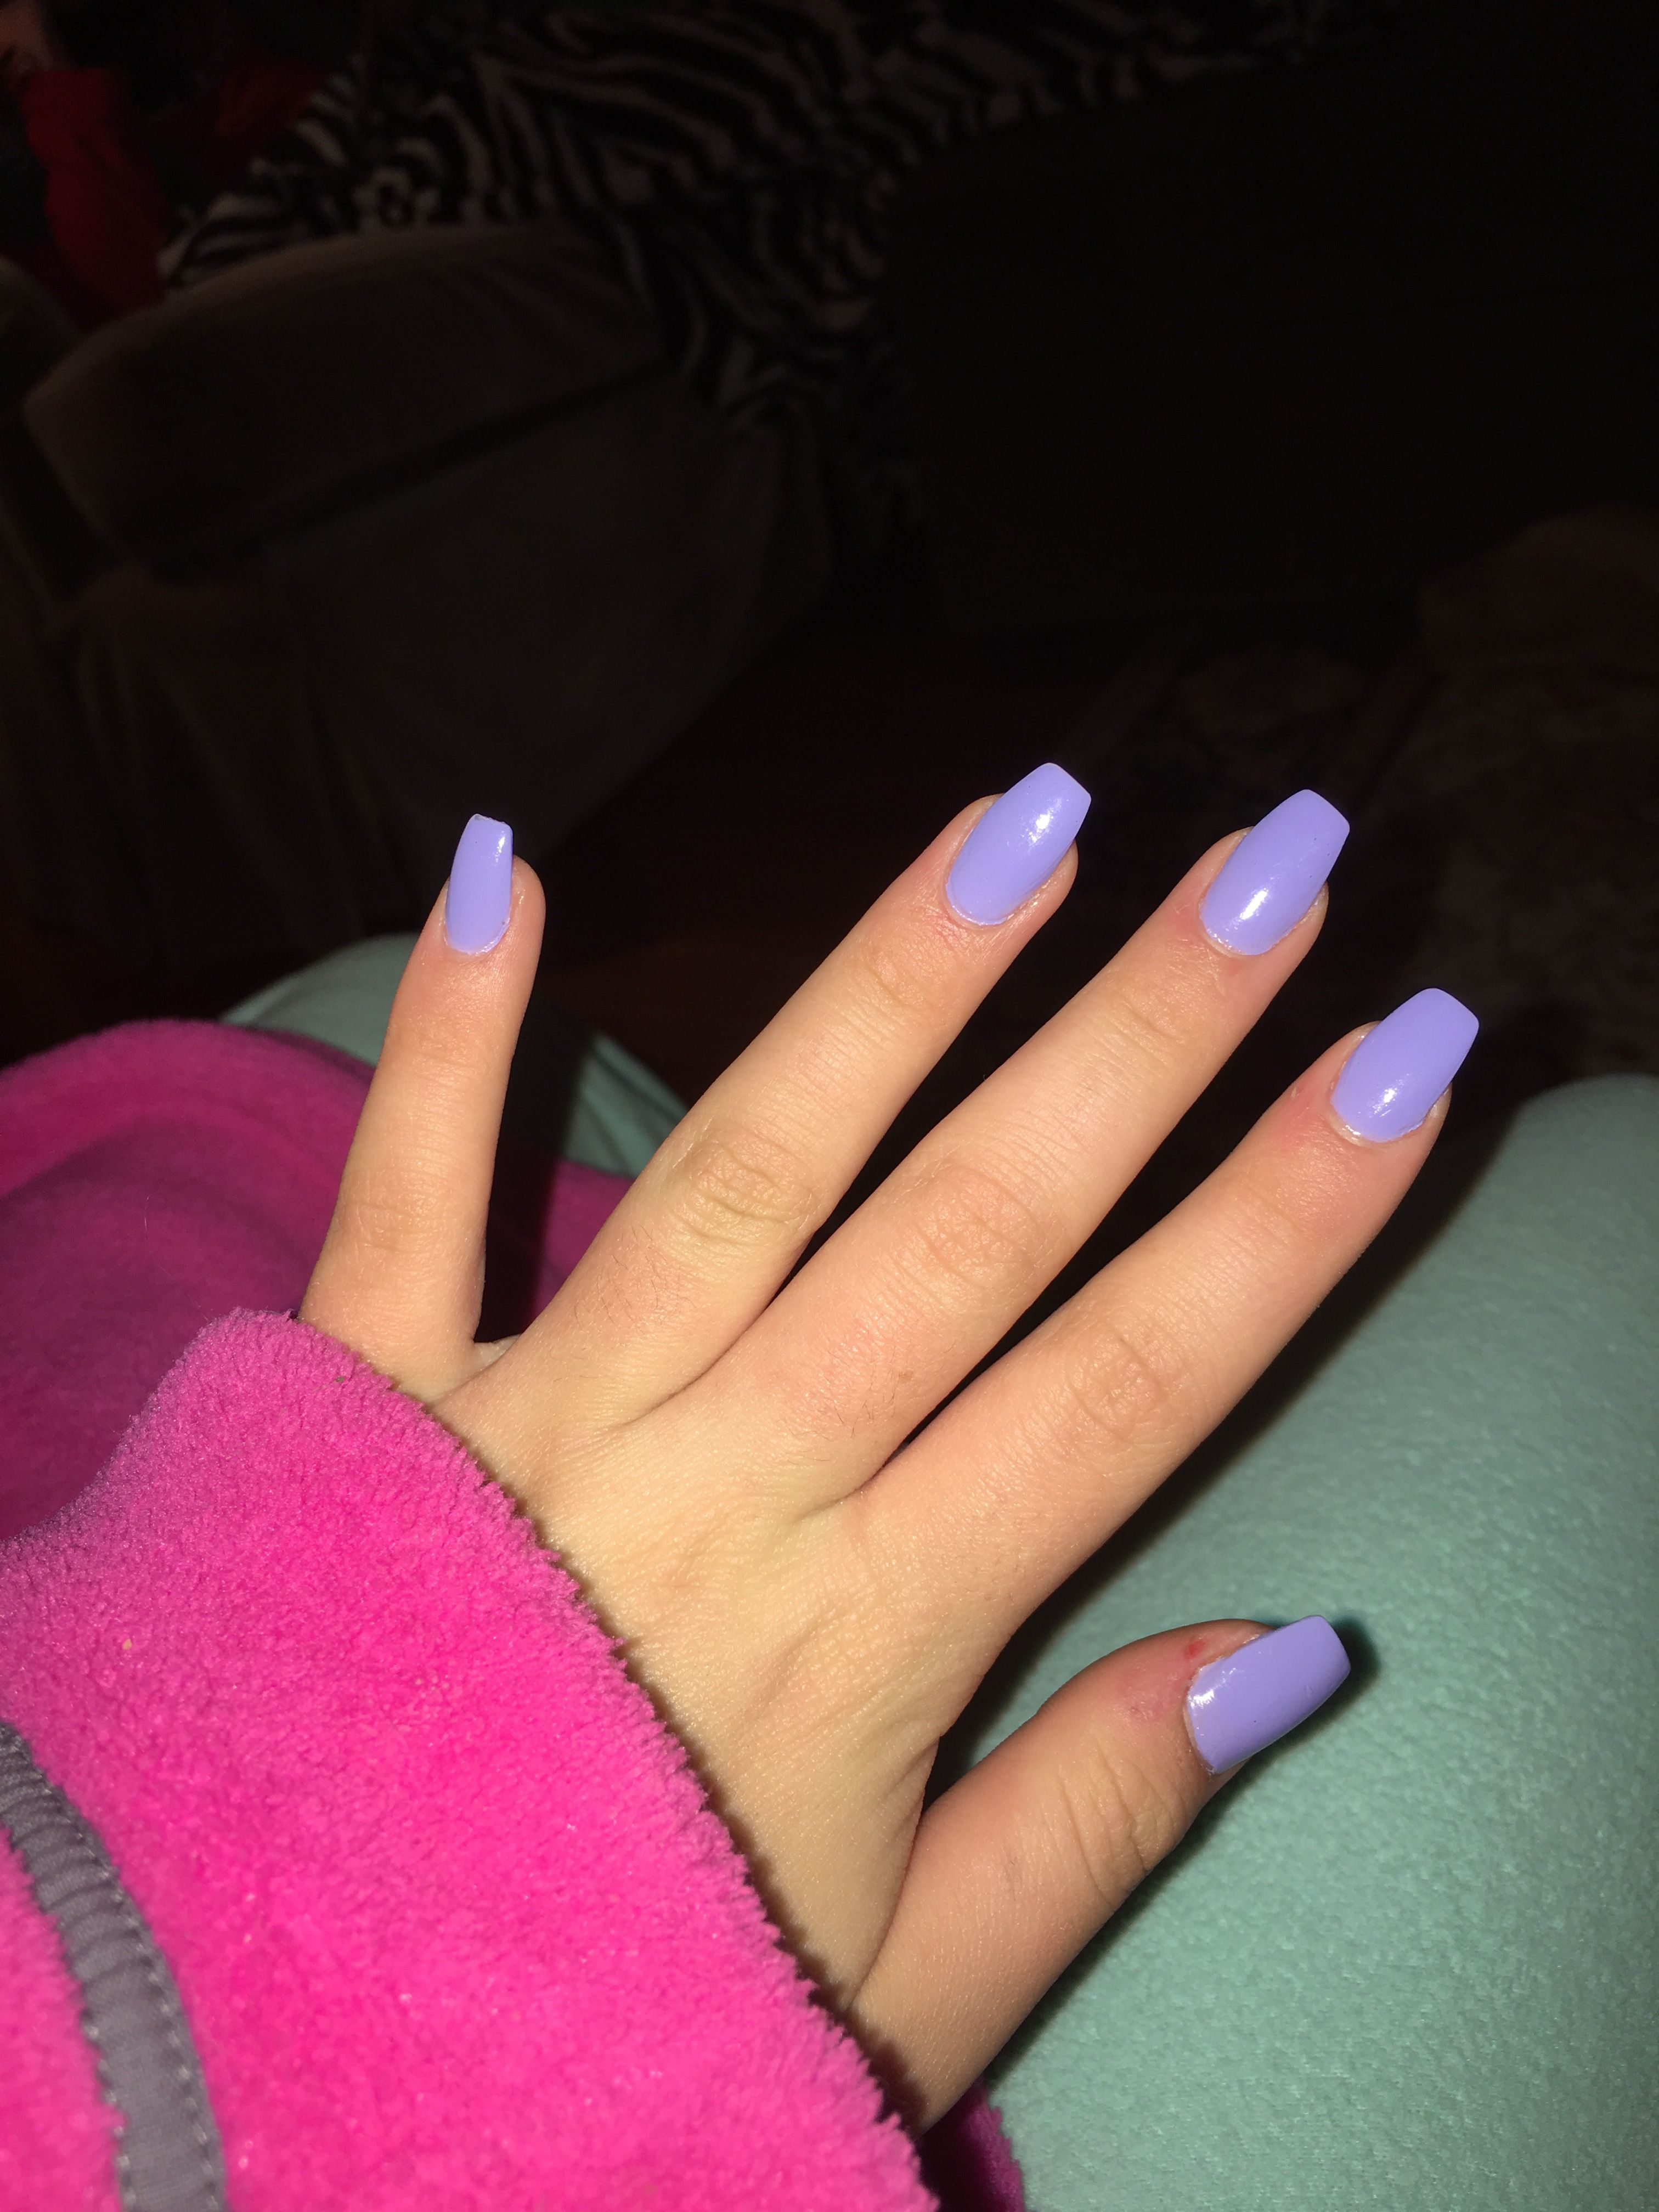 Short Lavender Coffin Nails | Acrylic nails coffin short ...